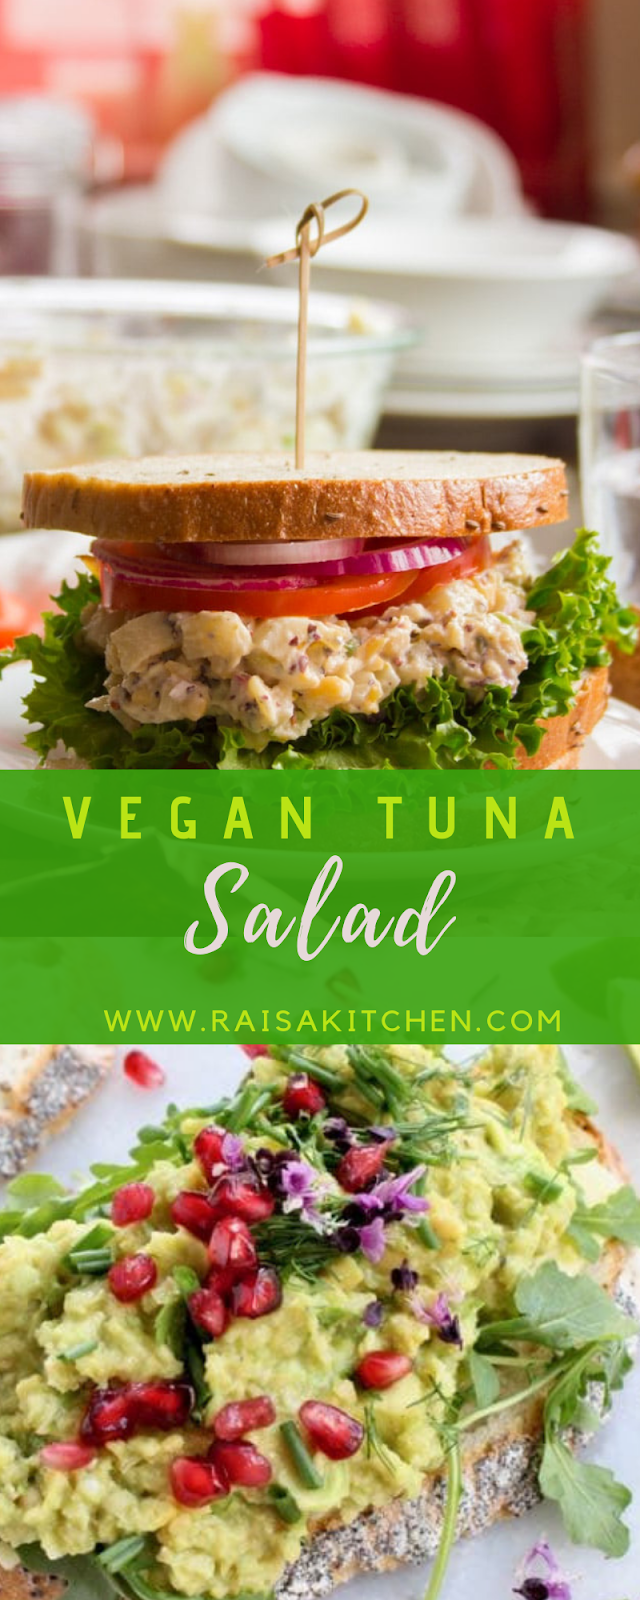 Better than Tuna: Vegan Tuna Salad